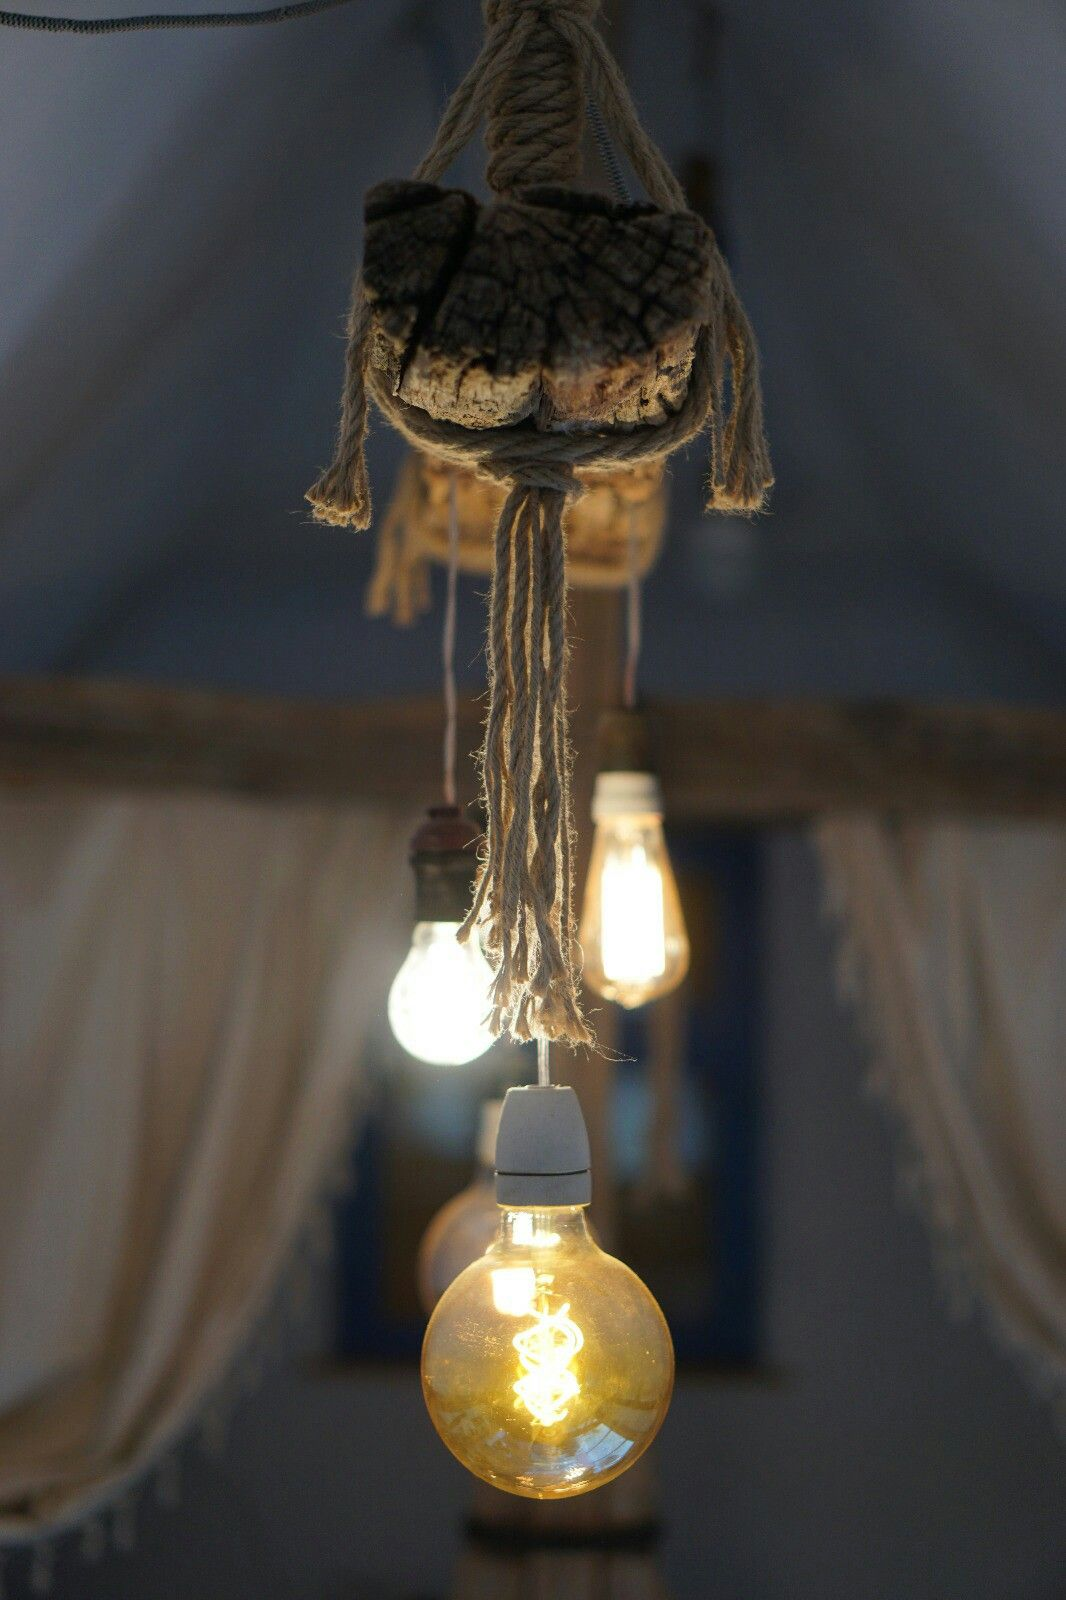 Pin By Florin Lfu On Old Wooden Barn In Transylvania Wooden Barn House In The Woods Ceiling Lights